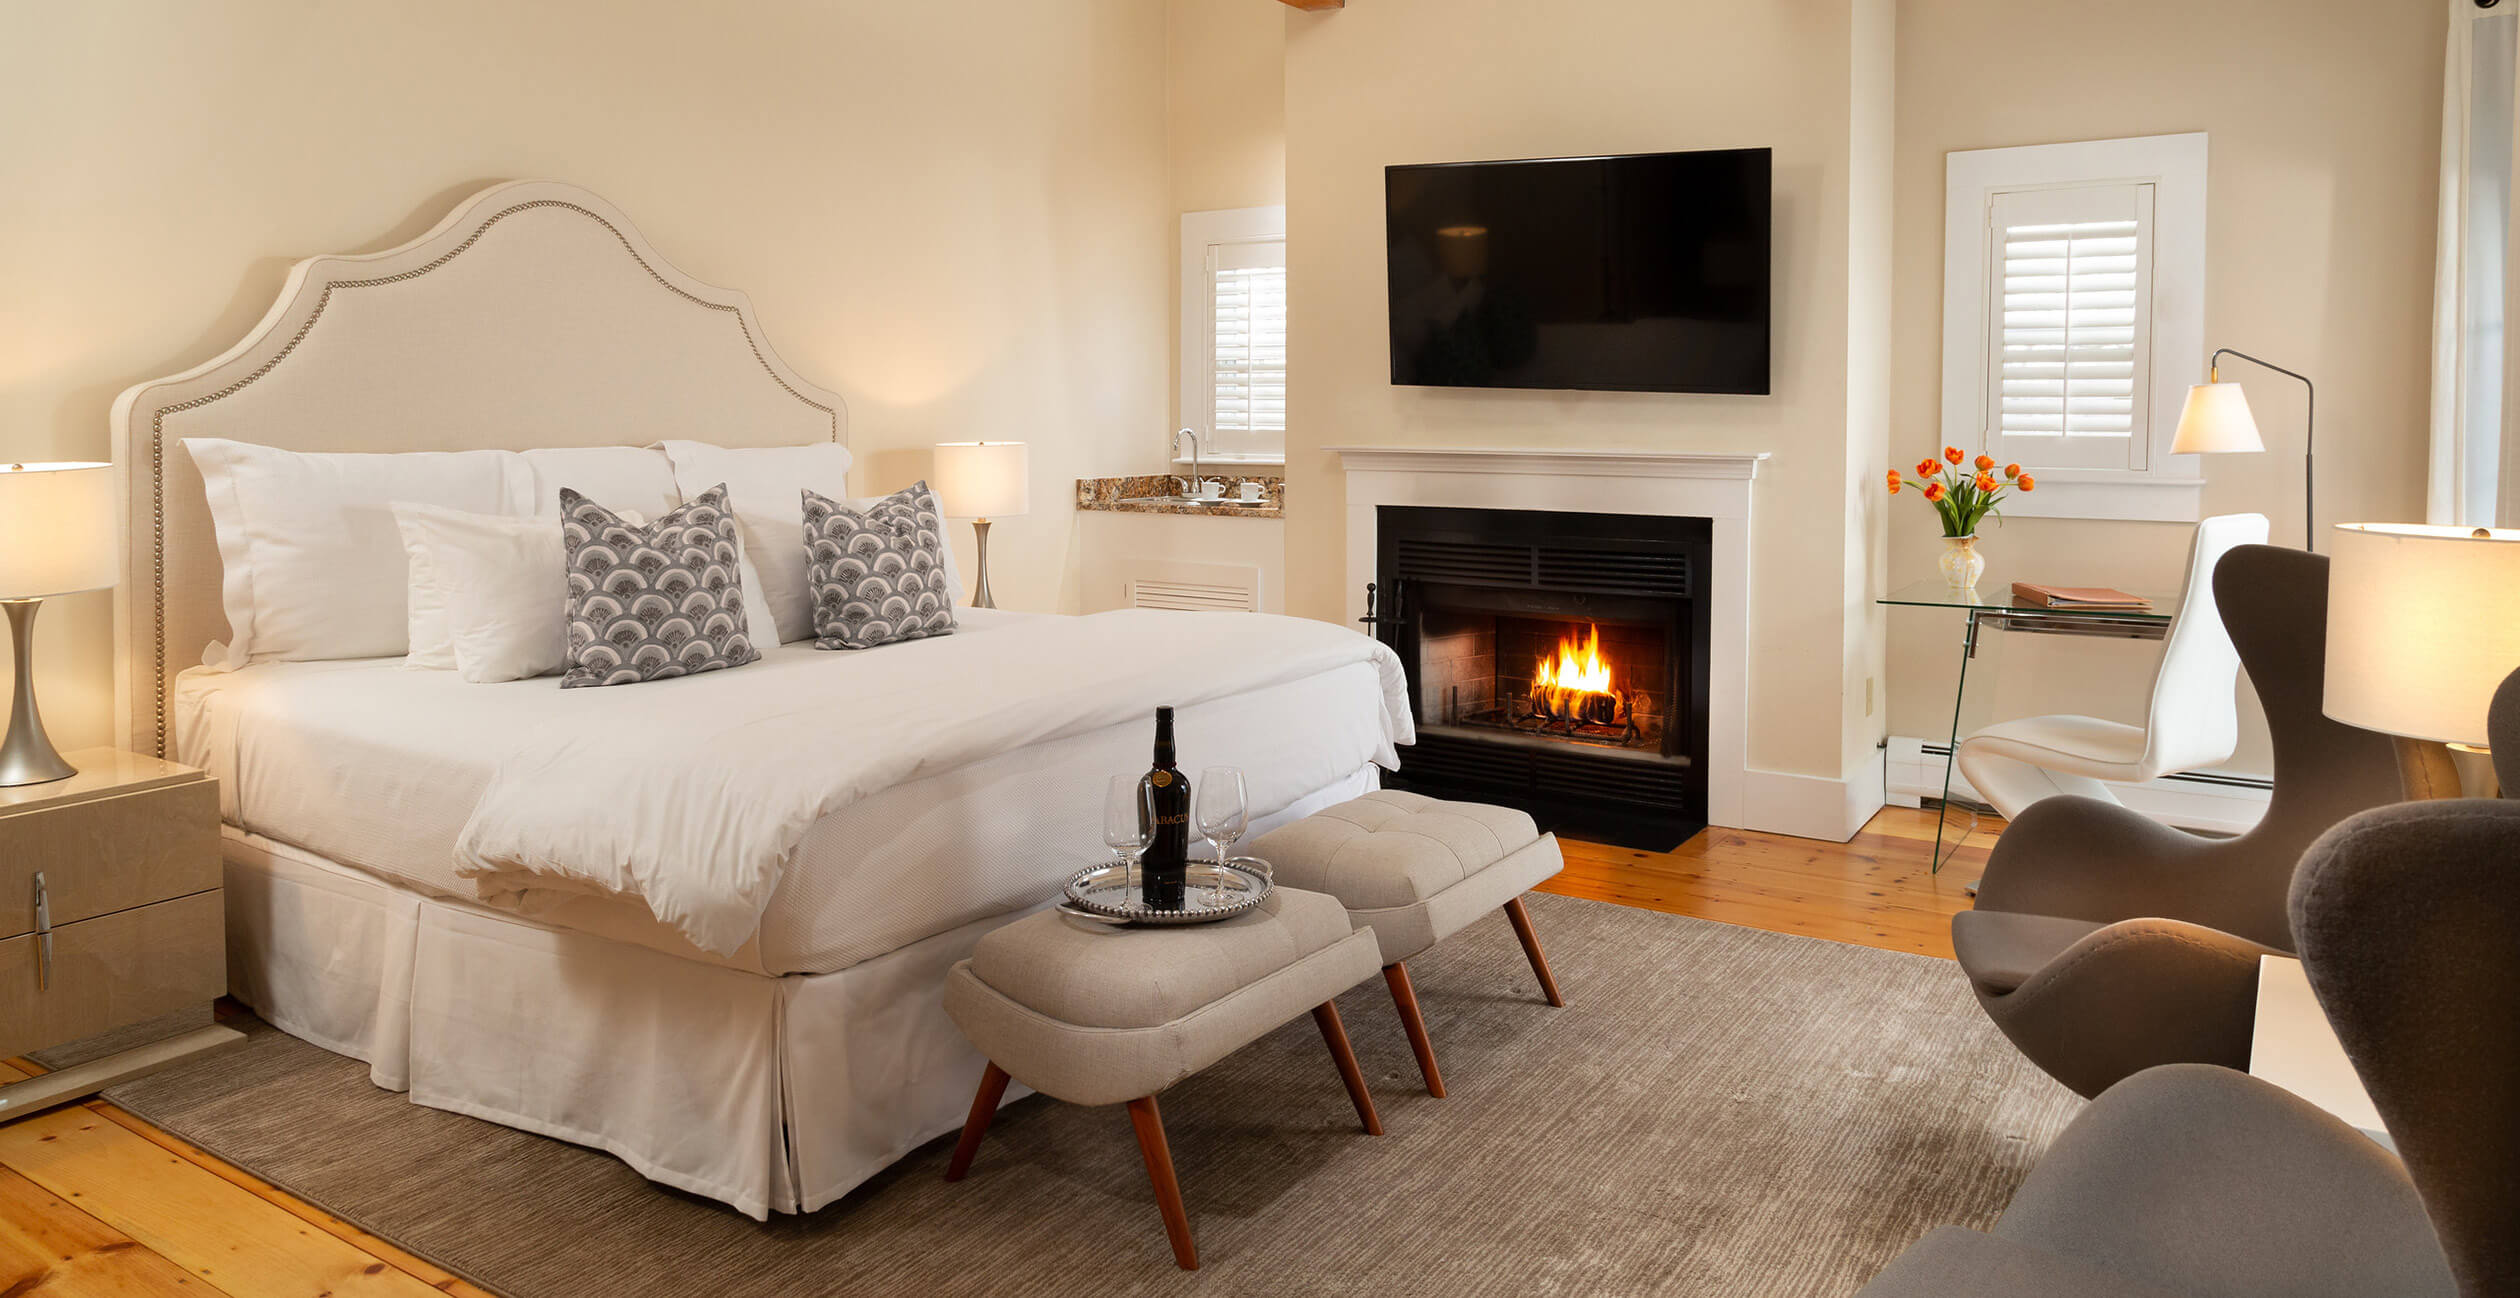 Room 12 bed, fireplace and seating area